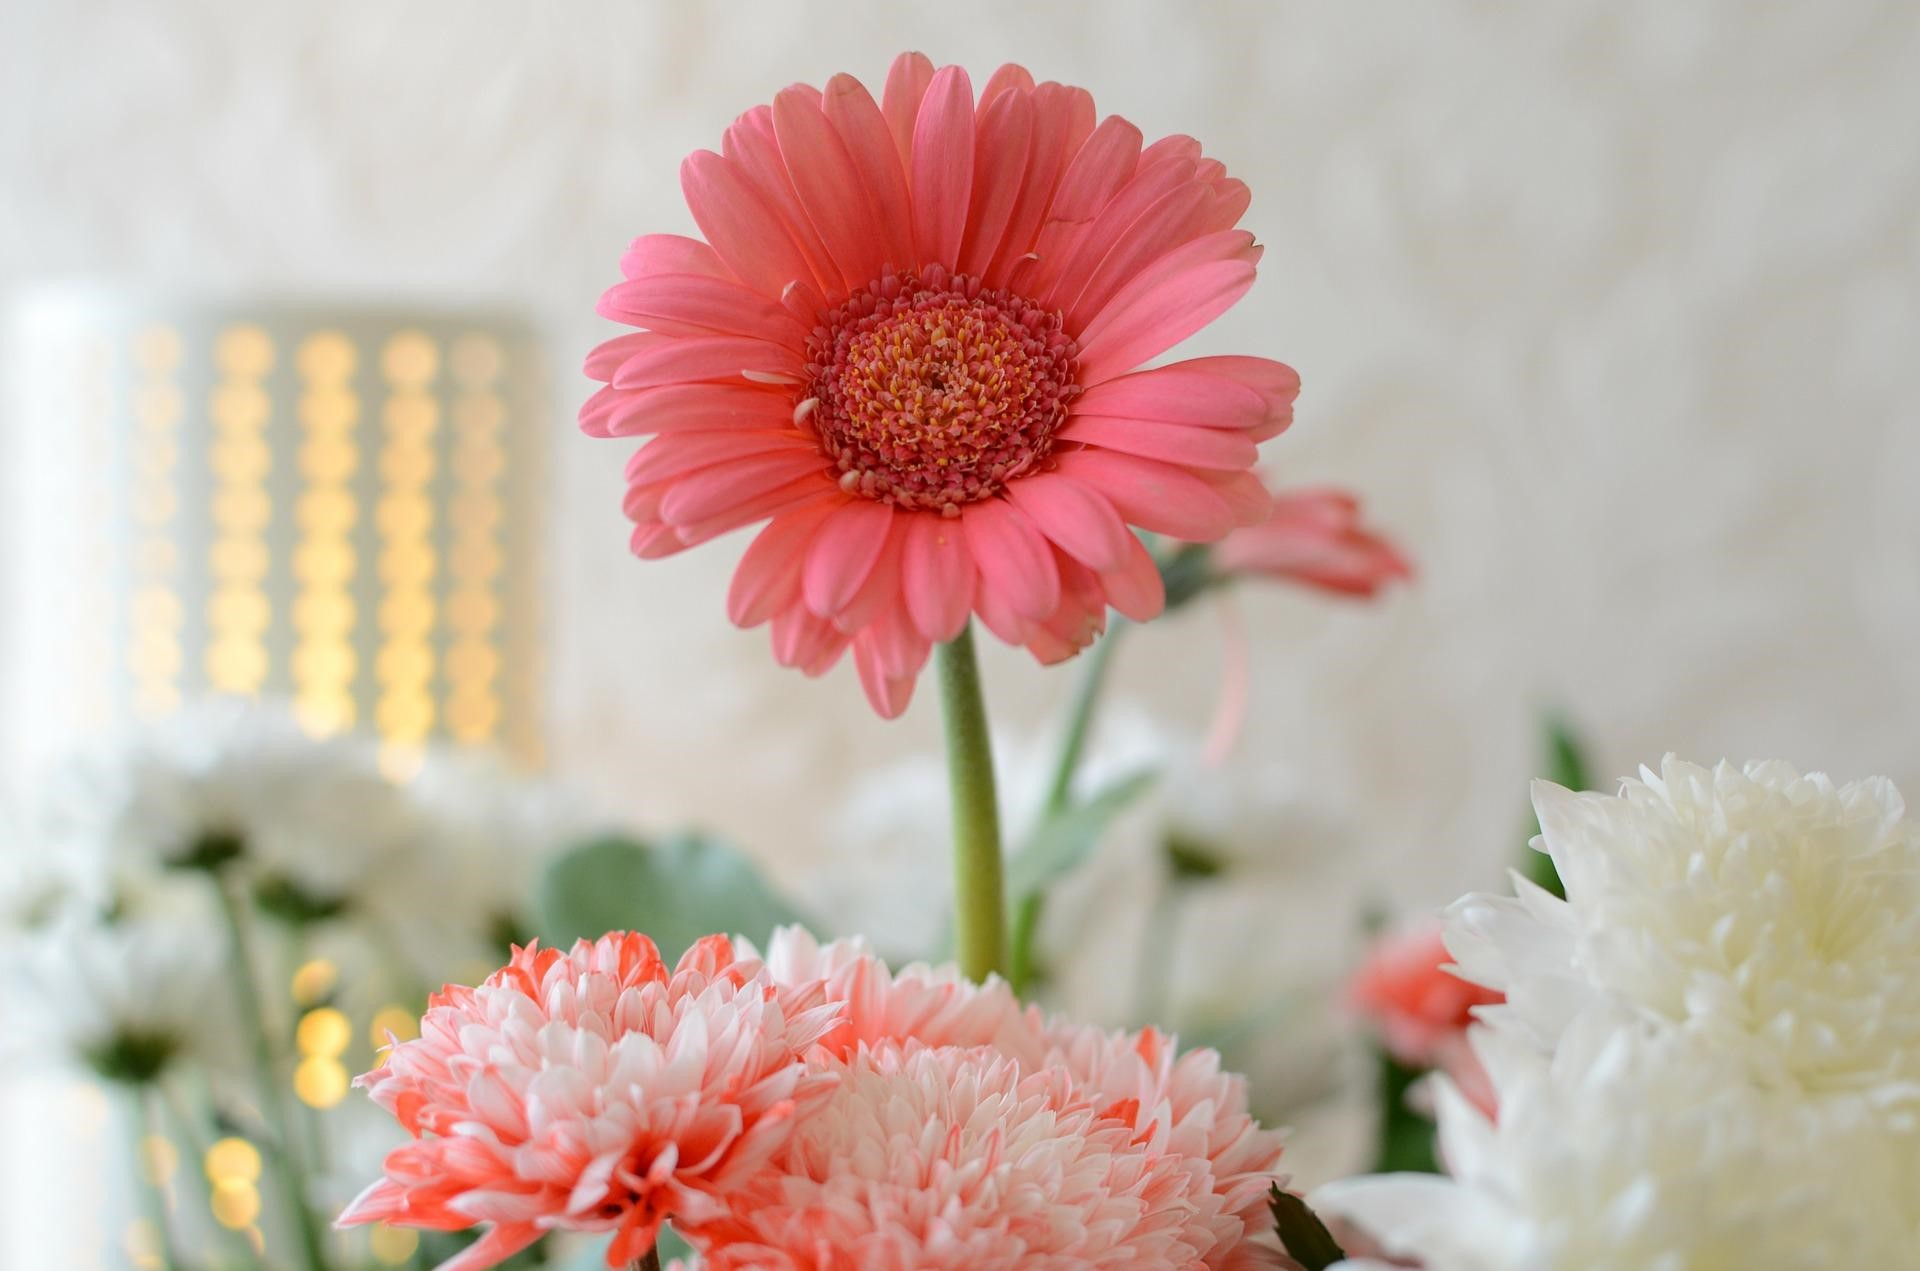 Most Mesmerizing Flowers Fit For Your Loved Ones 1